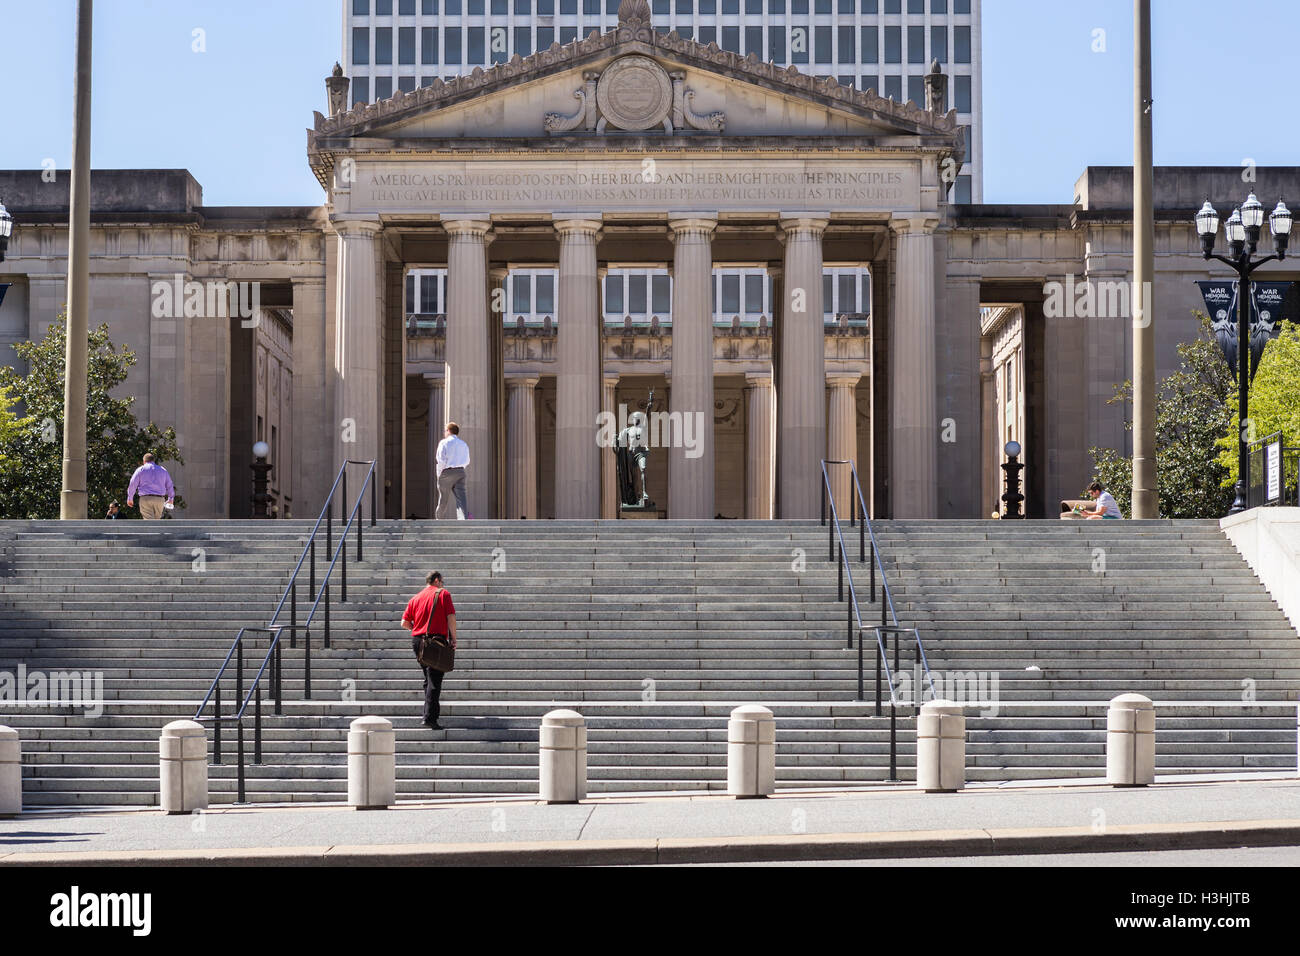 A view of the steps leading to War Memorial Auditorium in Nashville, Tennessee - Stock Image